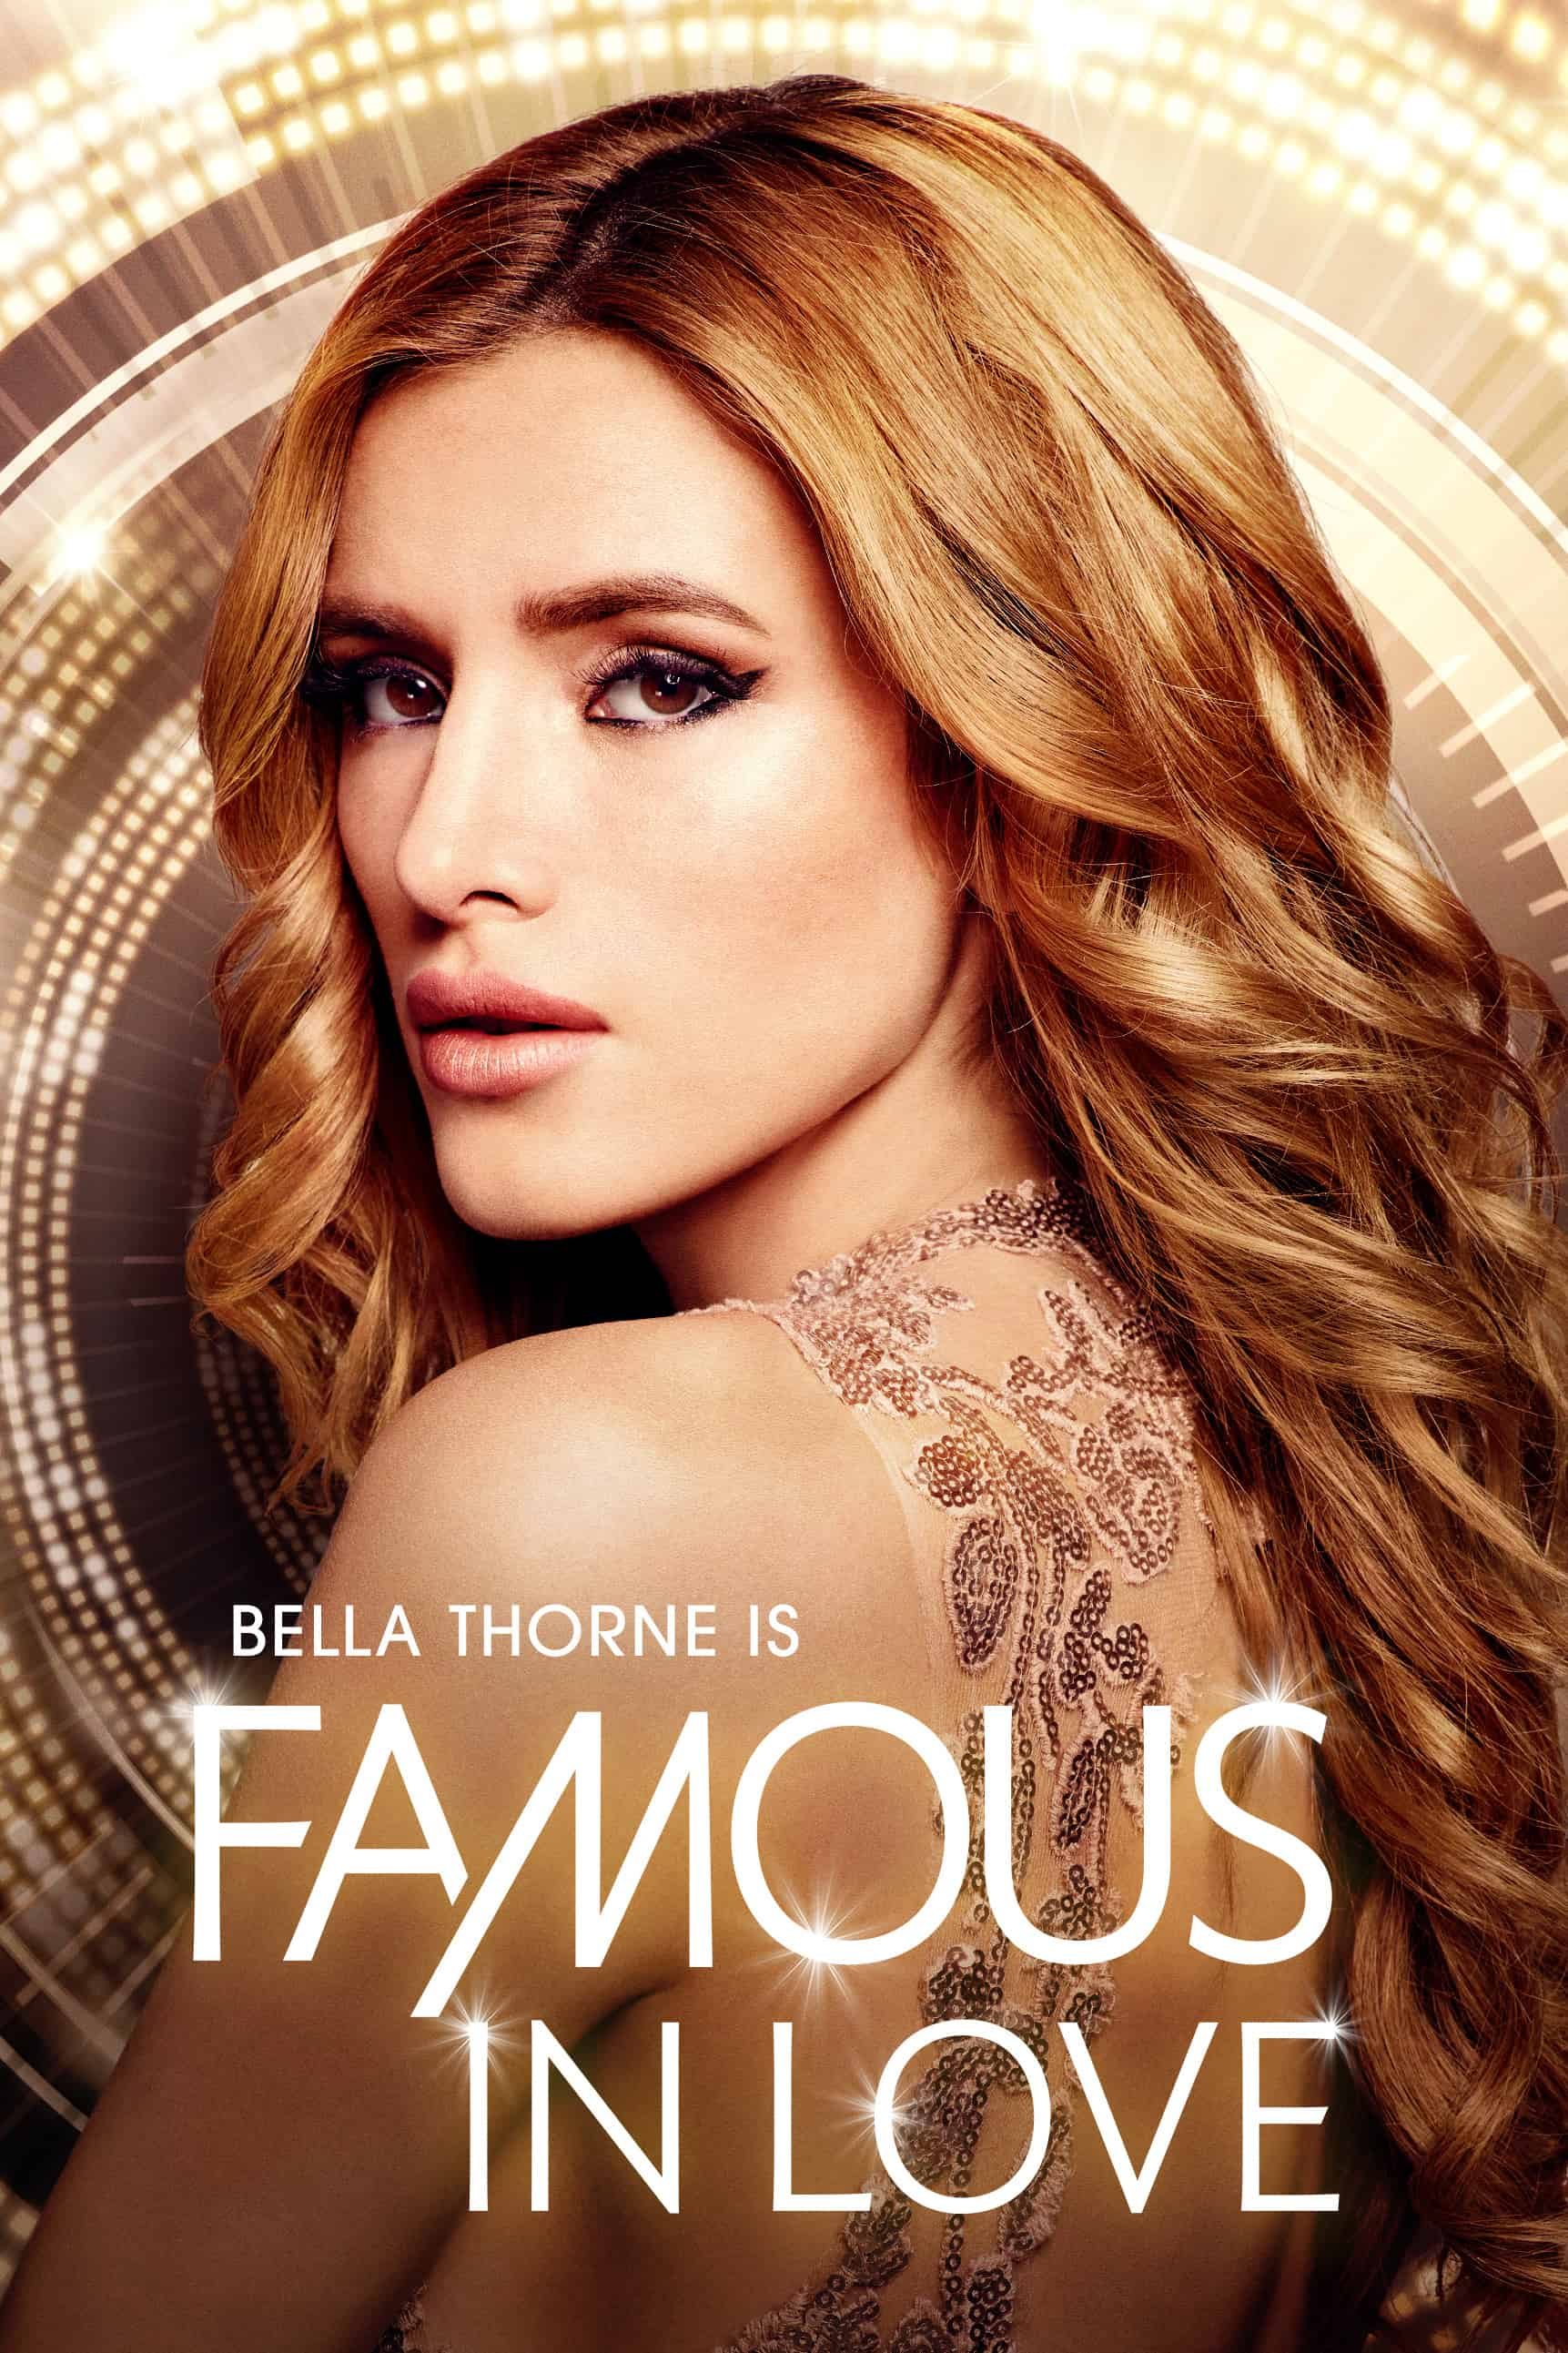 Famous in Love, 2017